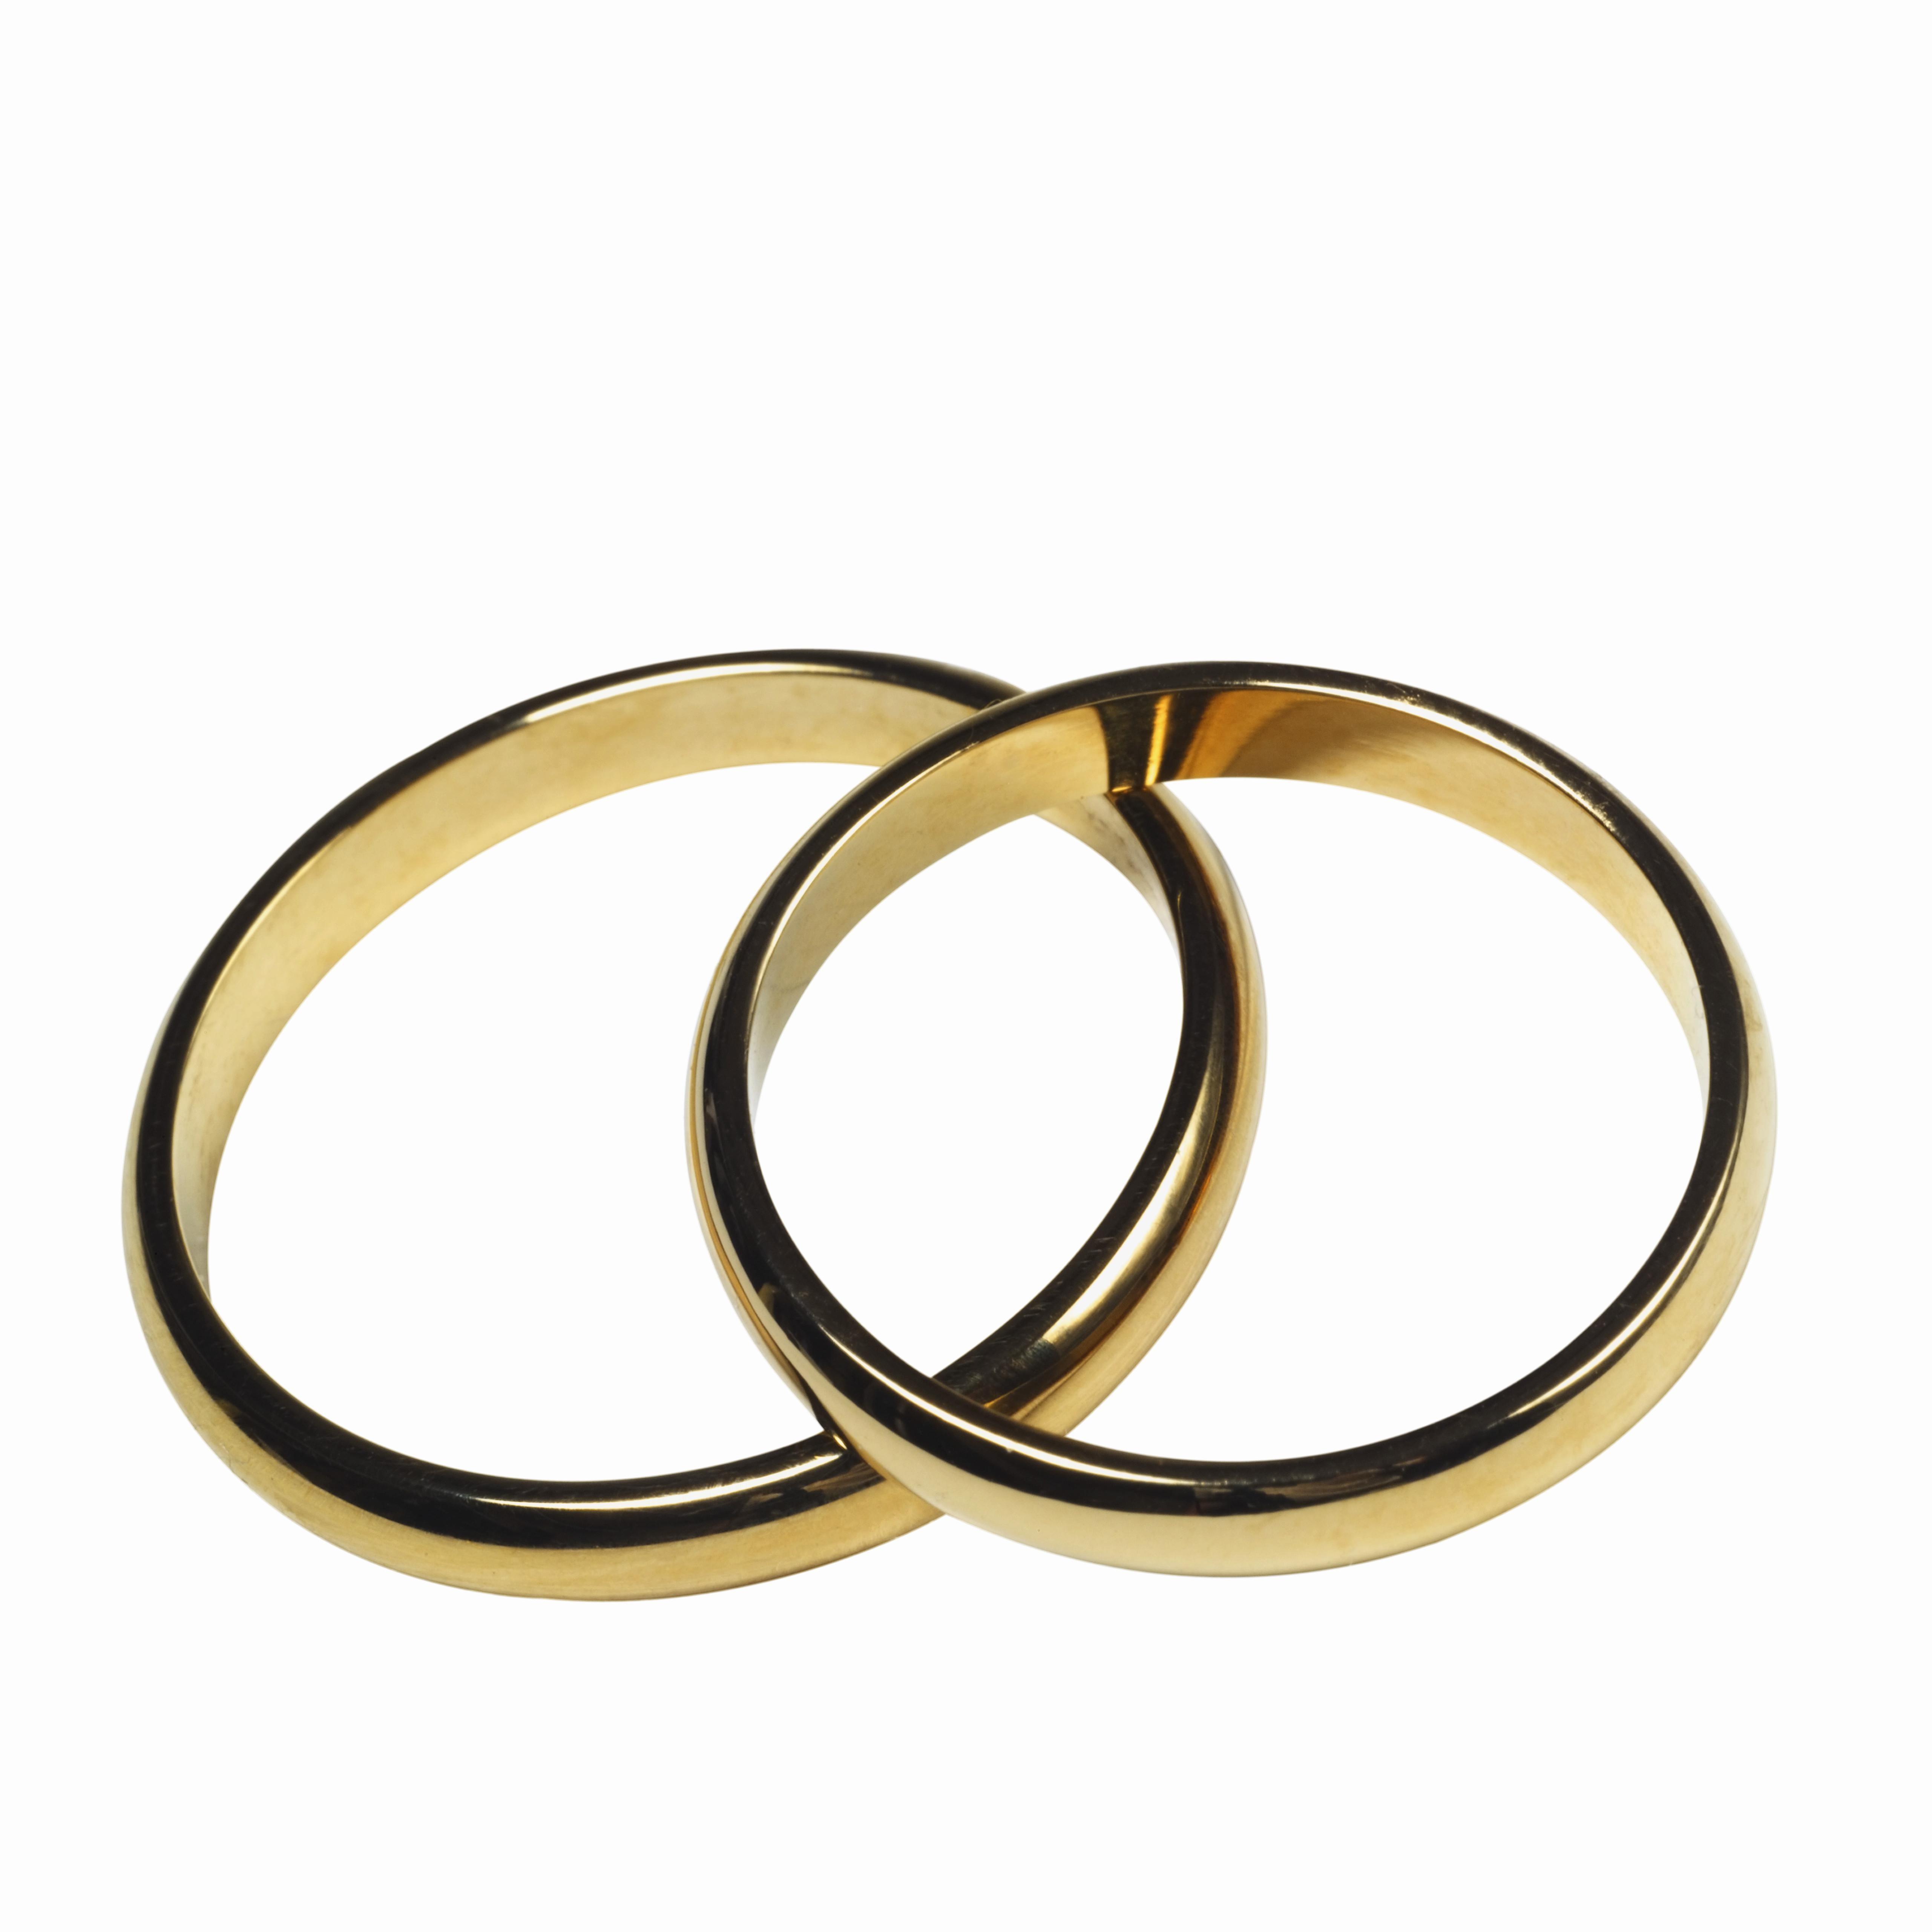 Elevated view of wedding rings